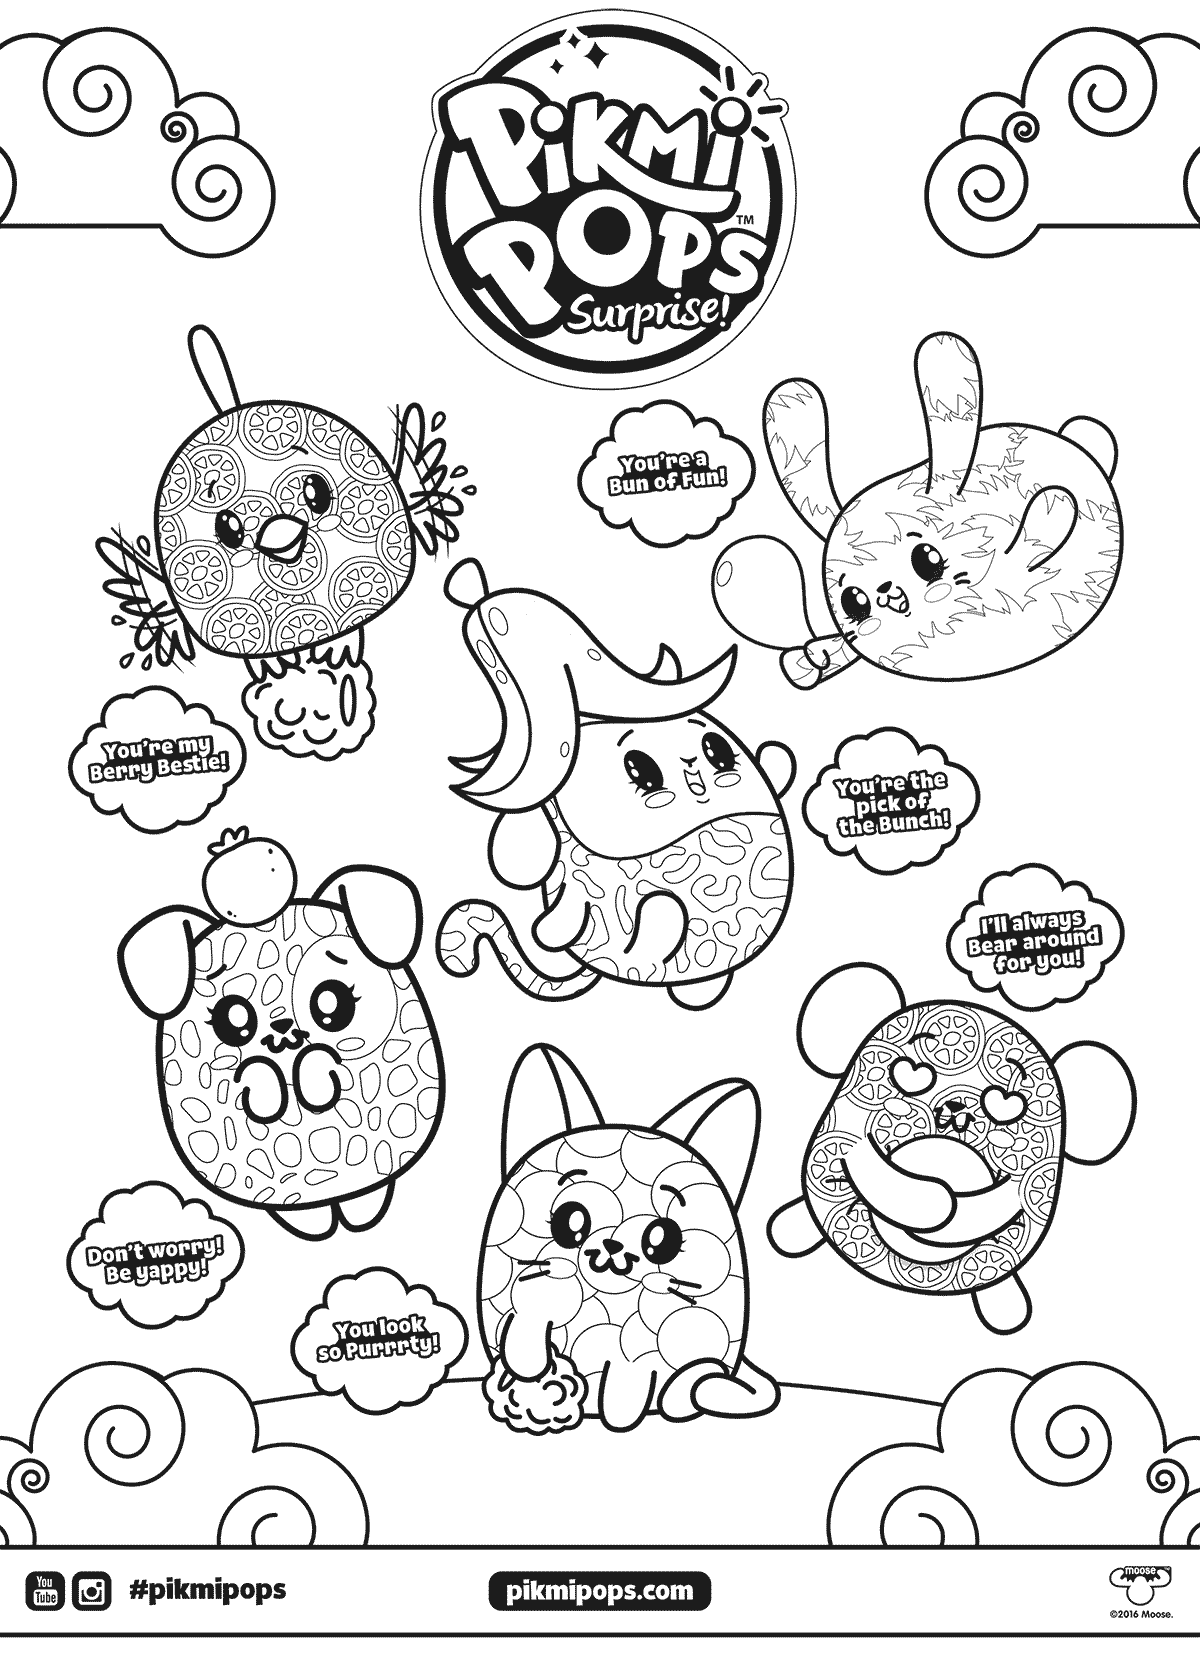 Squishies Coloring Pages : squishies, coloring, pages, Pikmi, Coloring, Pages, Pages,, Books